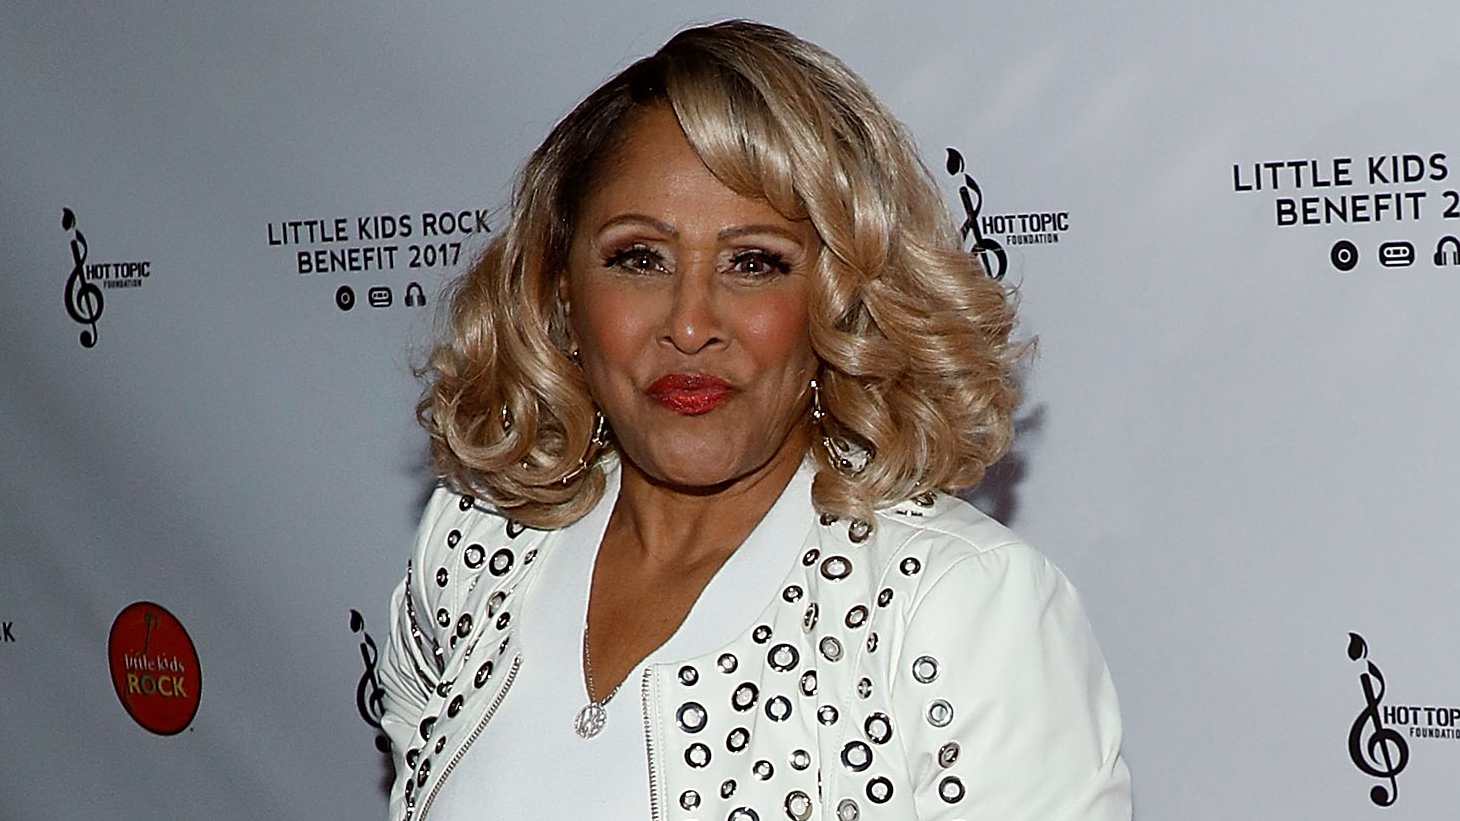 Westlake Legal Group 9cae10d2-Darlene-Love Darlene Love blasts 'Christmas in Rockefeller Center' producers for leaving her out of NBC special Nate Day fox-news/entertainment/tv fox-news/entertainment/music fox-news/entertainment/celebrity-news fox-news/entertainment fox news fnc/entertainment fnc e3030253-fea6-5ae3-b6f1-85ea7b6316f4 article